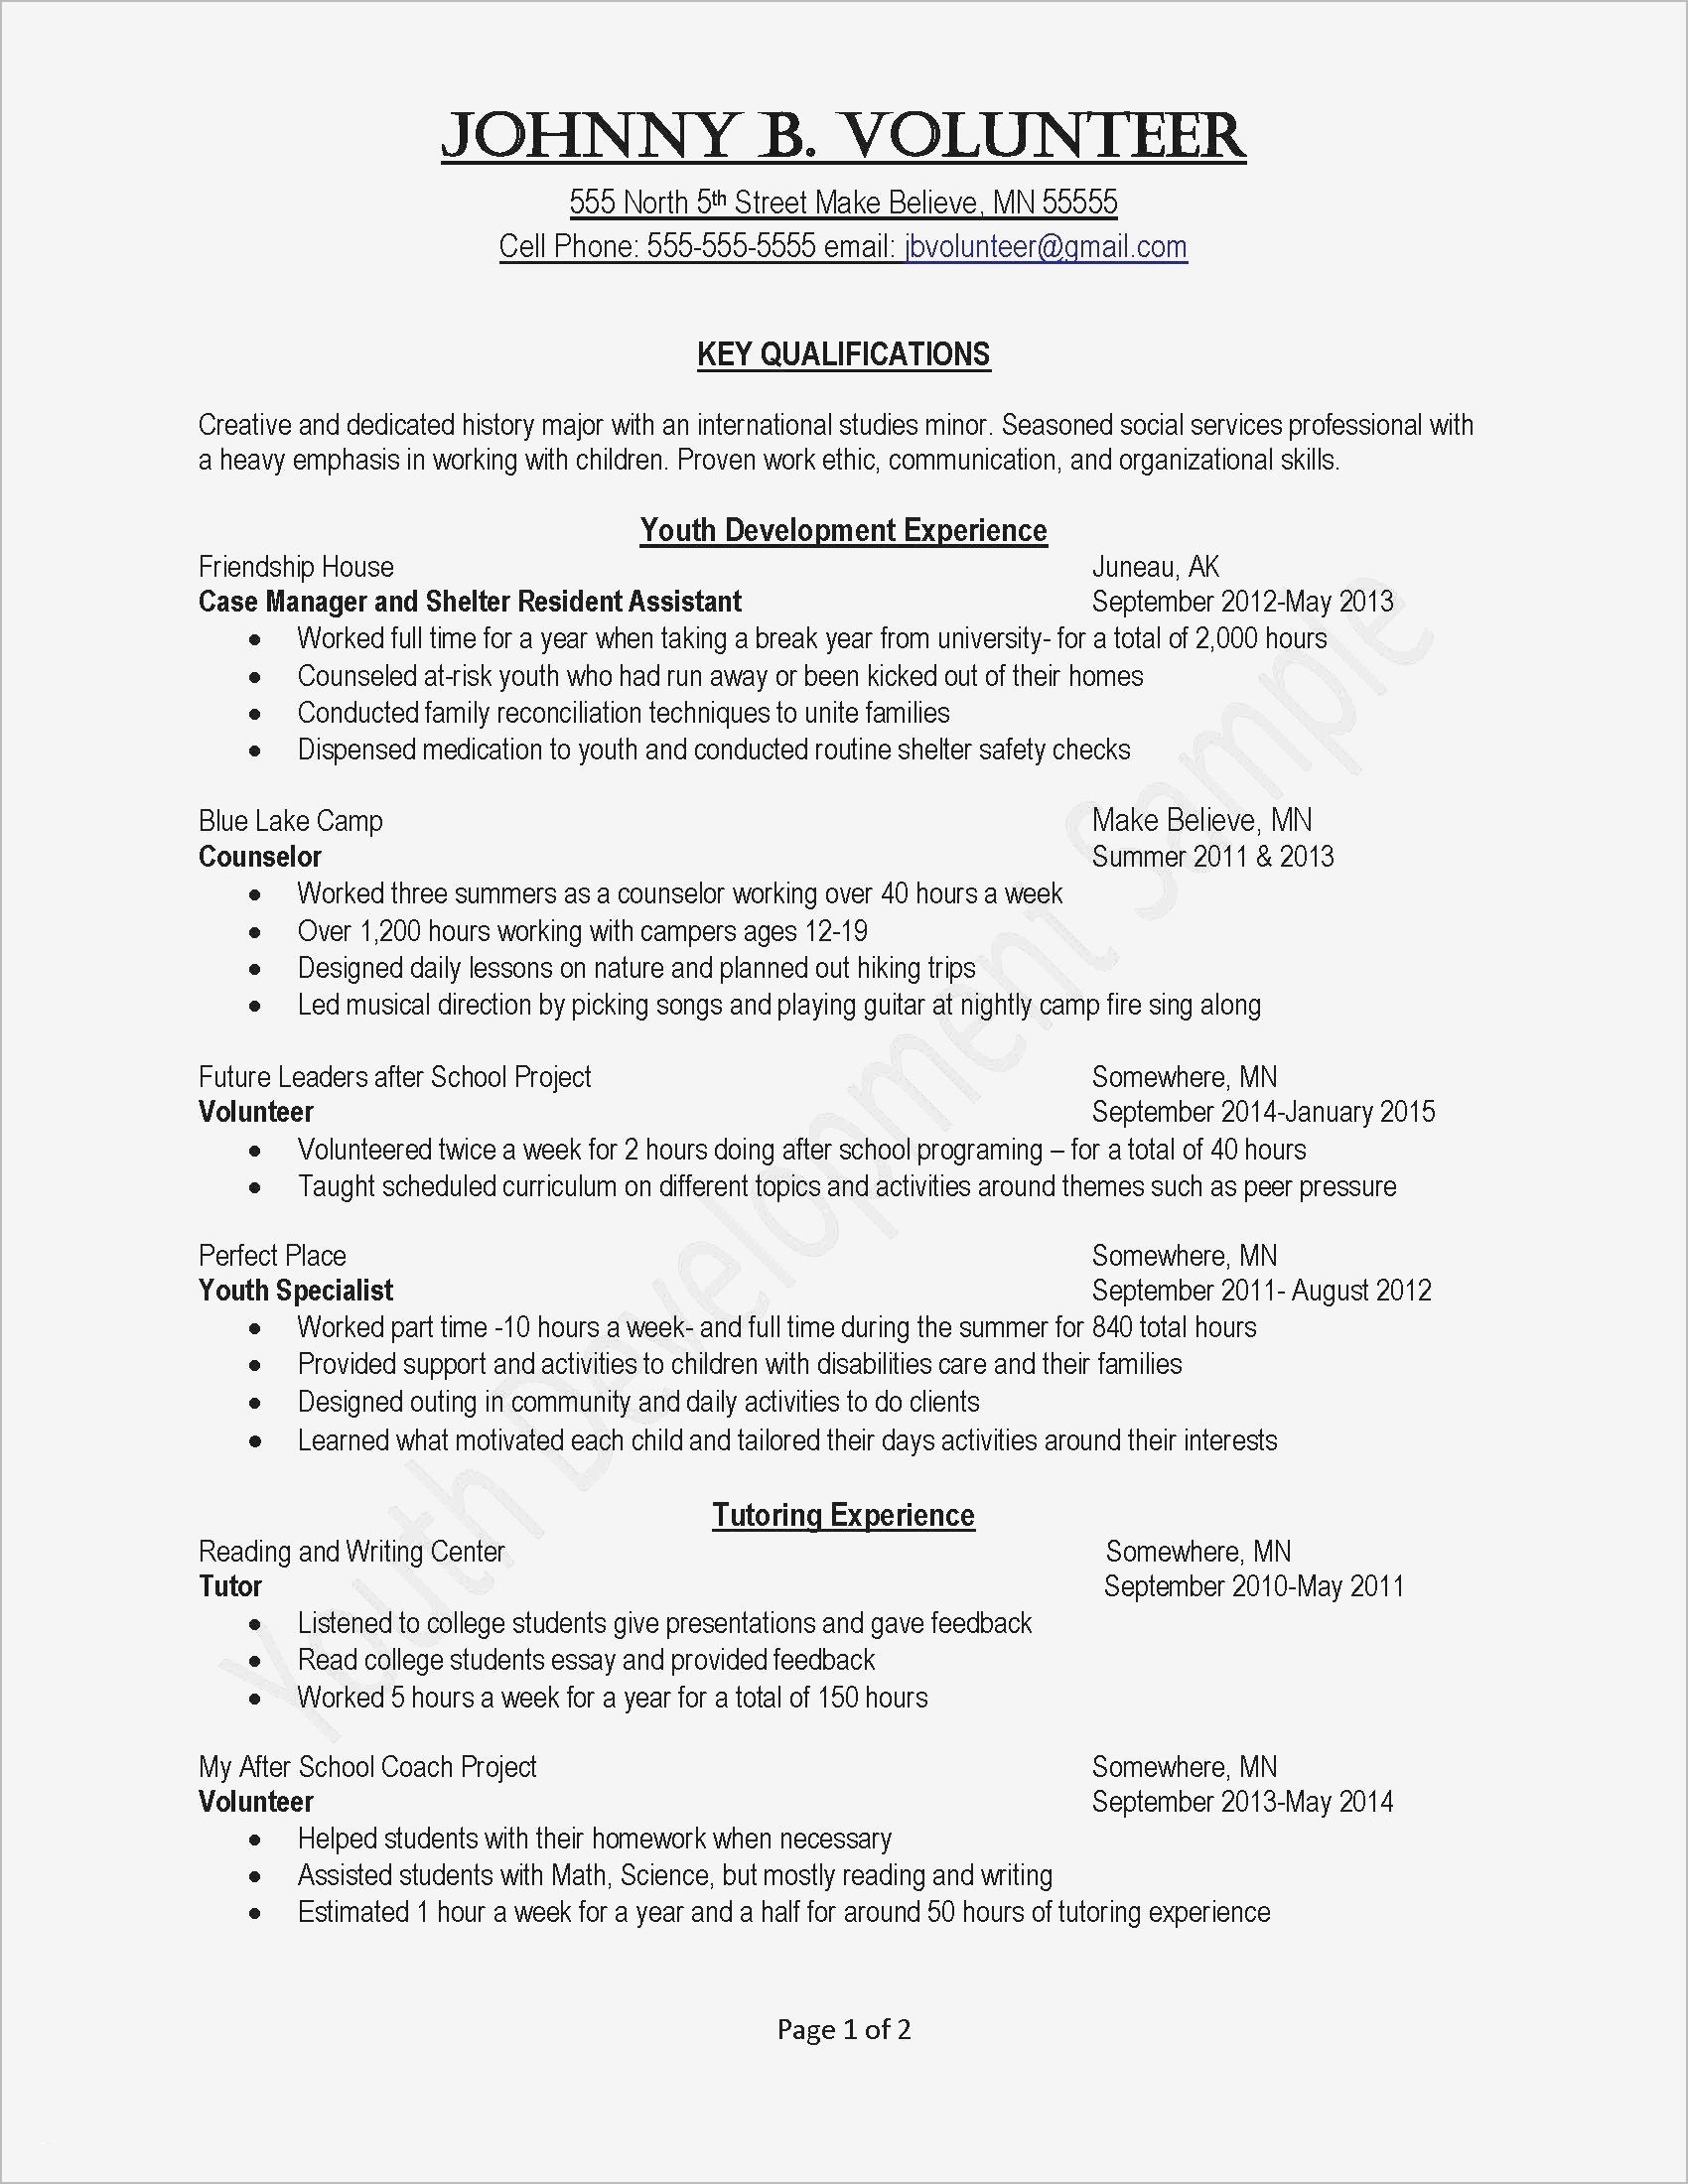 general cover letter template free Collection-General Resume Template Free Elegant Job Fer Letter Template Us Copy Od Consultant Cover Letter Fungram 13-c